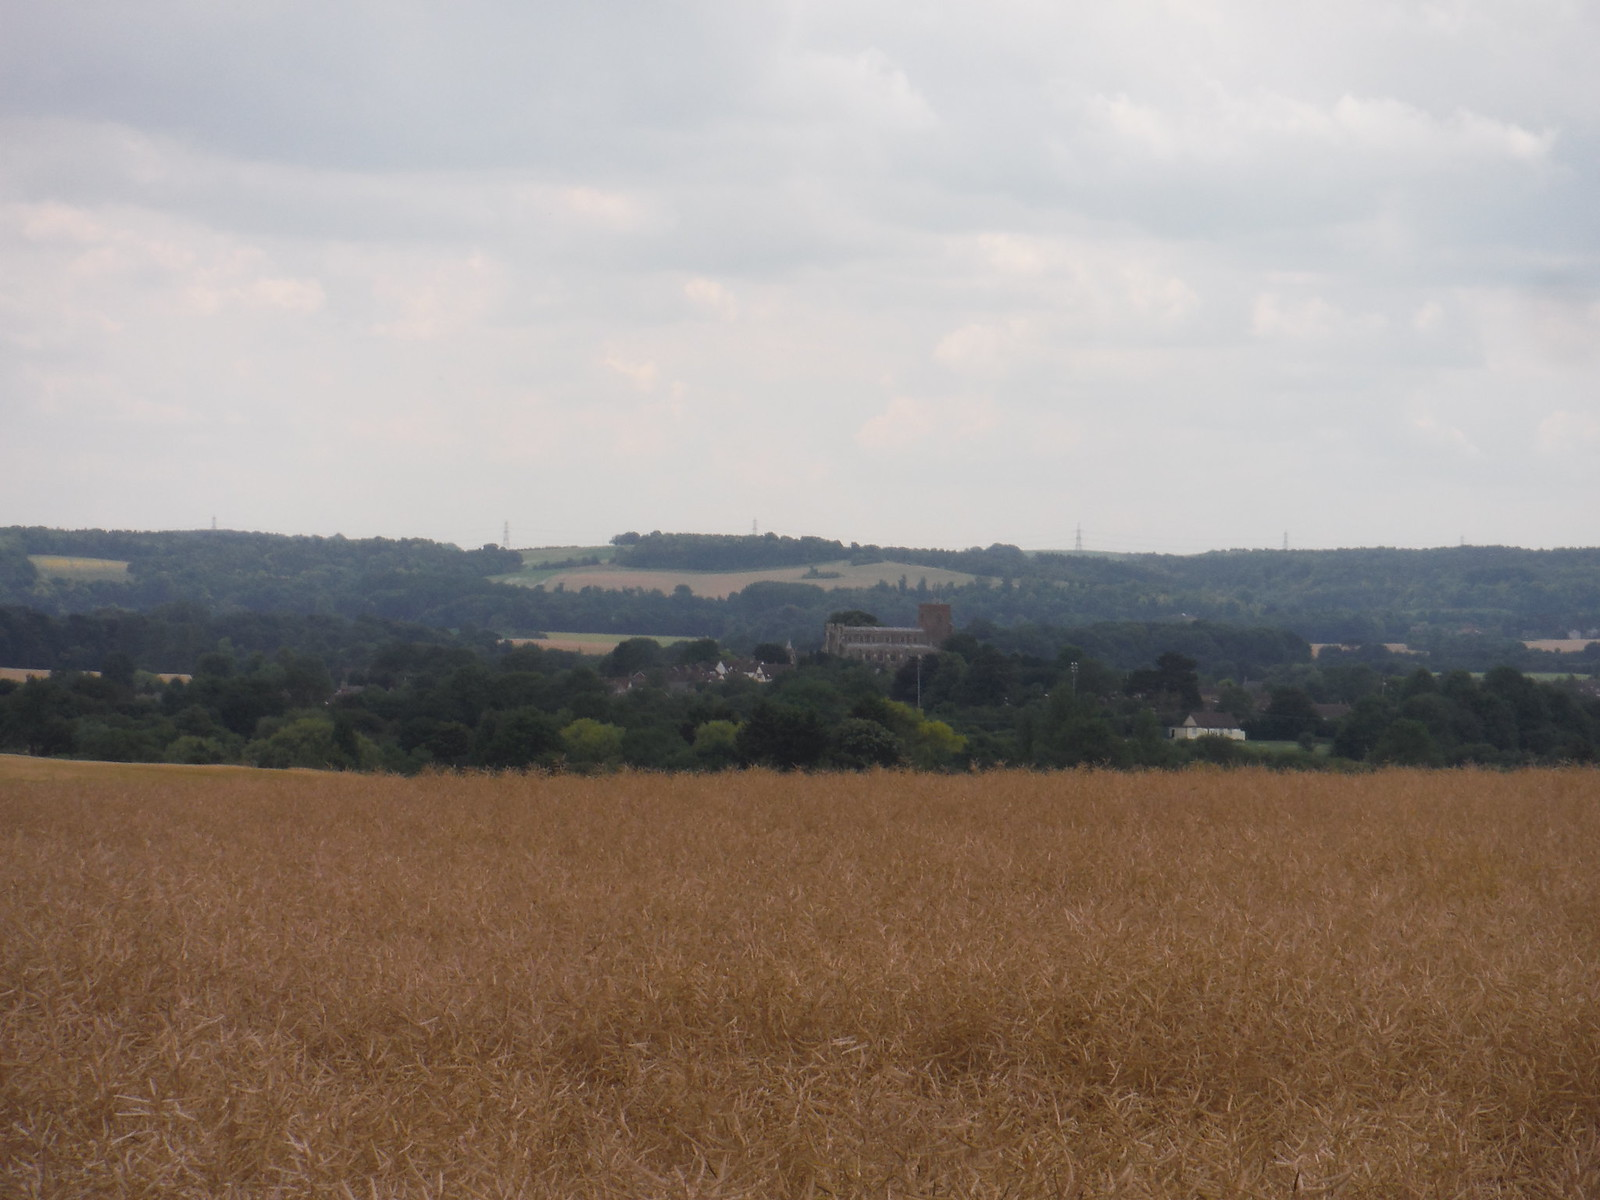 All Saints', Shillington, and Chilterns beyond SWC Walk 233 - Arlesey to Letchworth Garden City